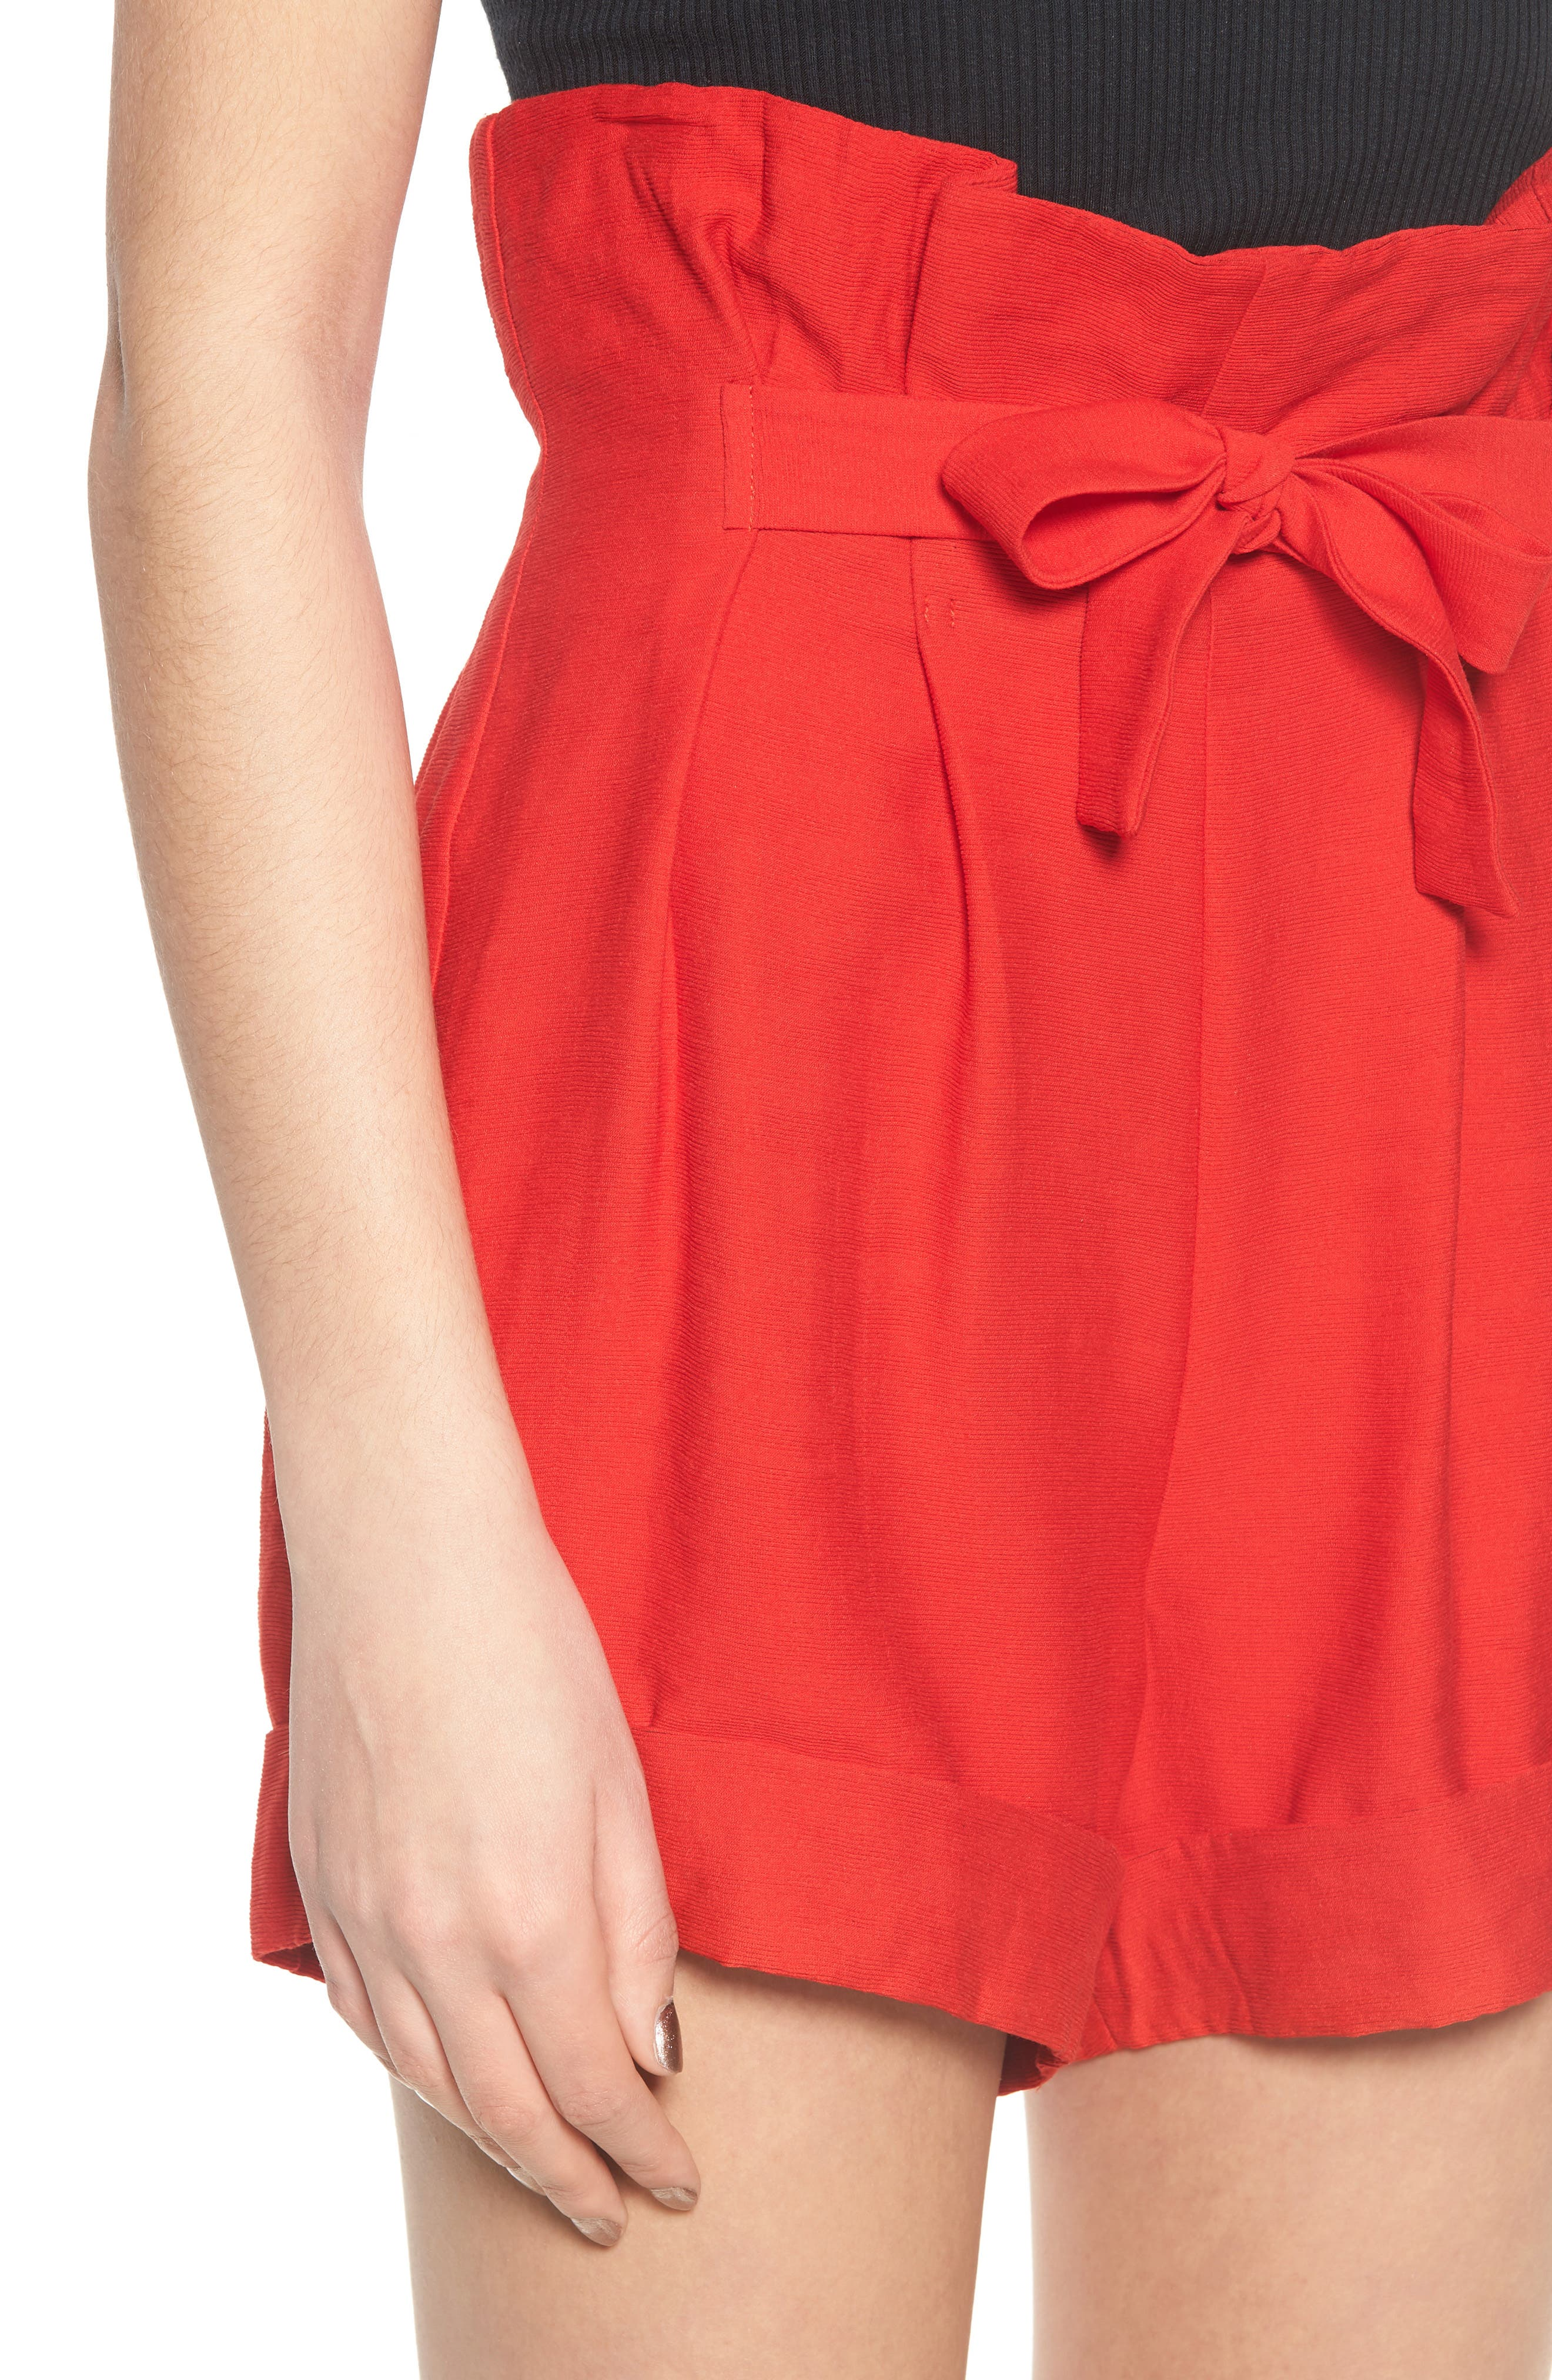 High Waist Short with Tie Detail,                             Alternate thumbnail 4, color,                             600